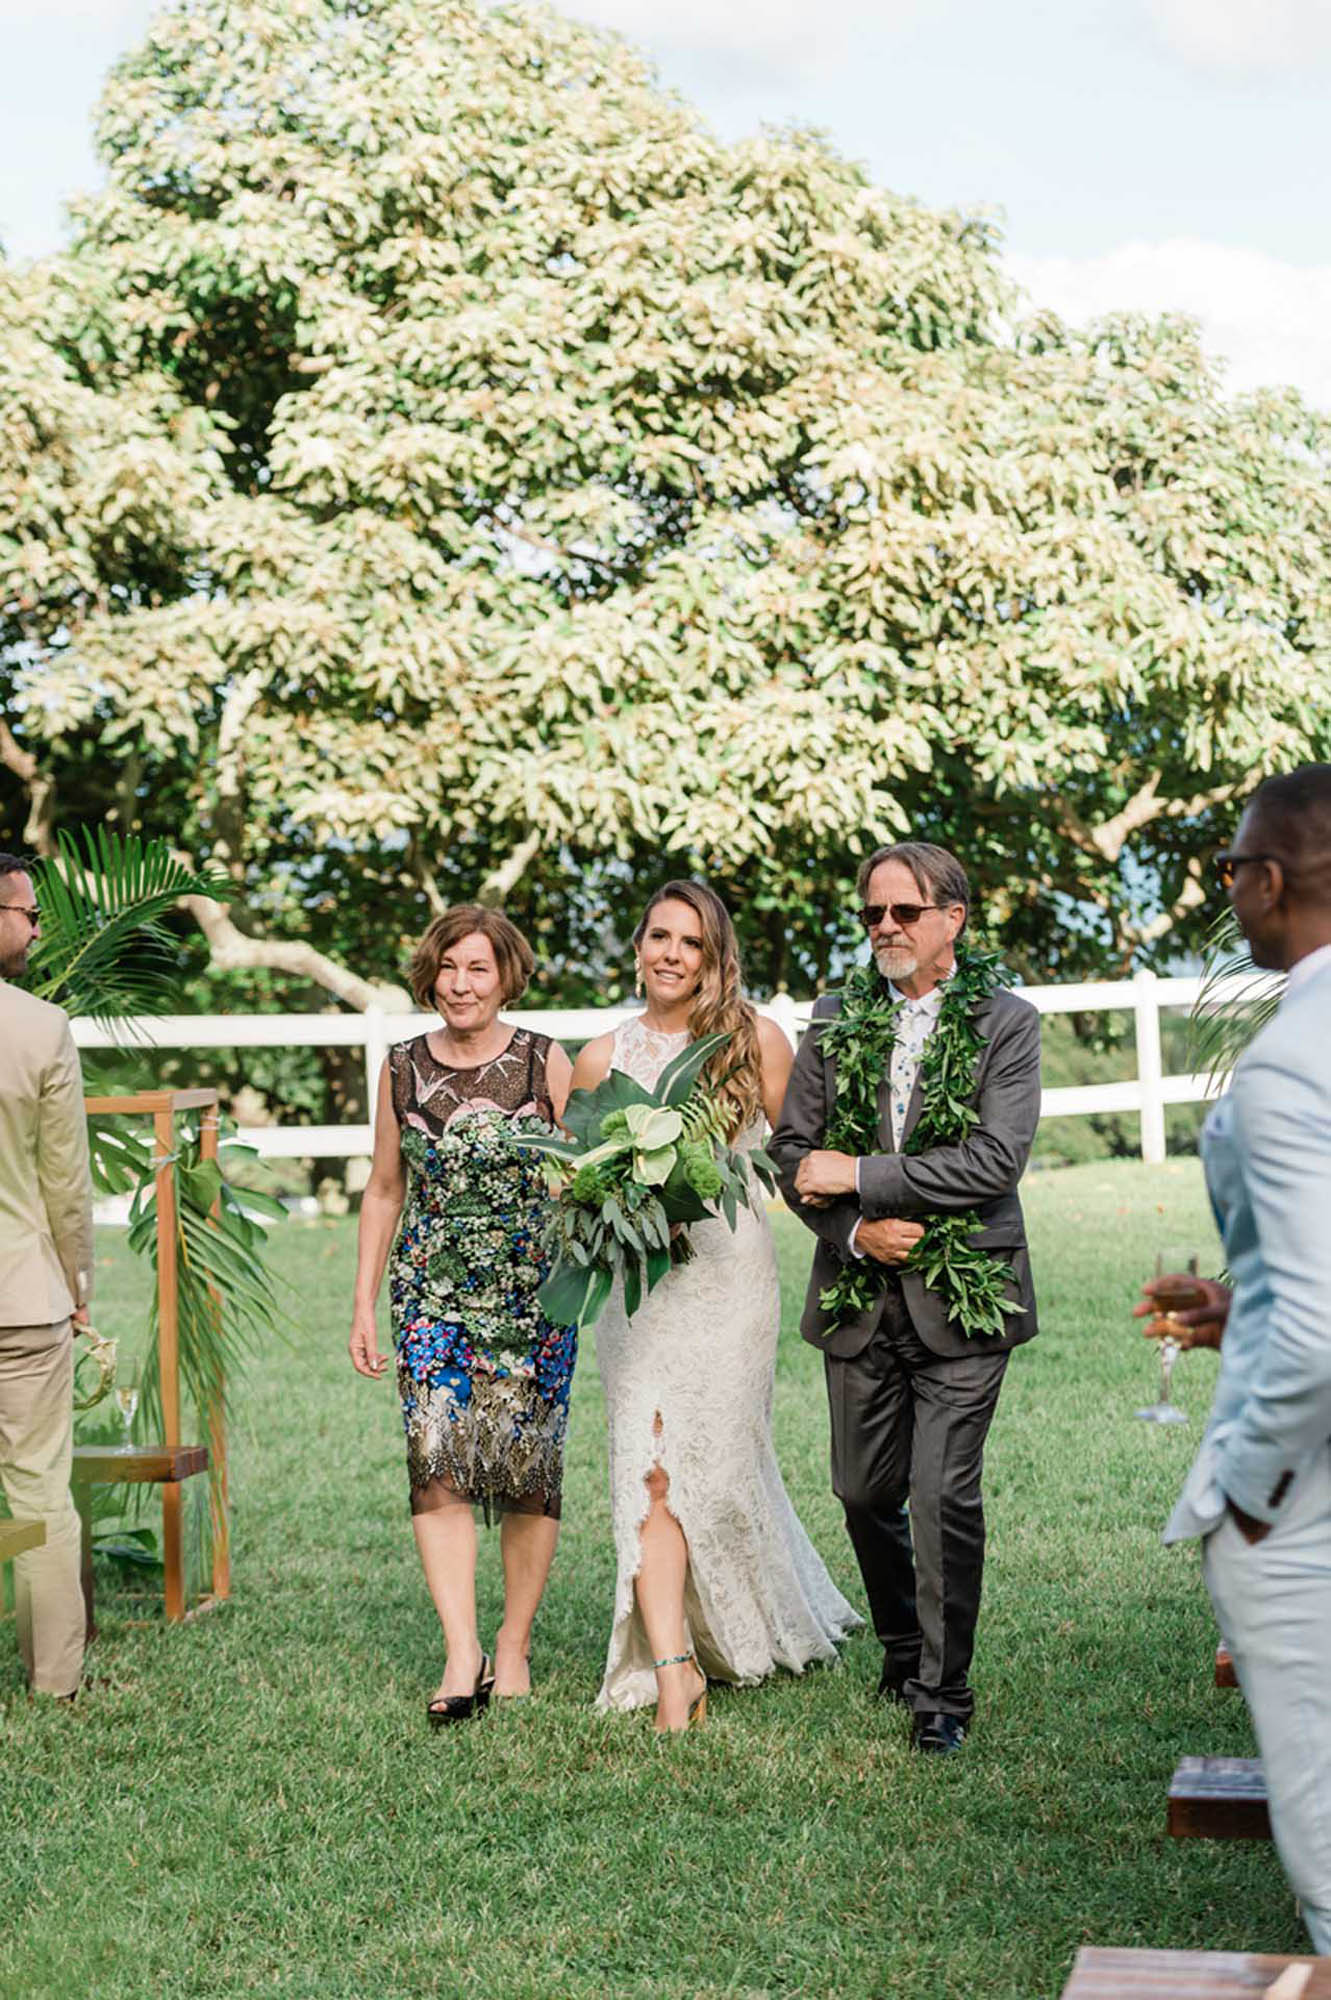 Tropical Lesbian Wedding in Hawaii - Dancing With Her